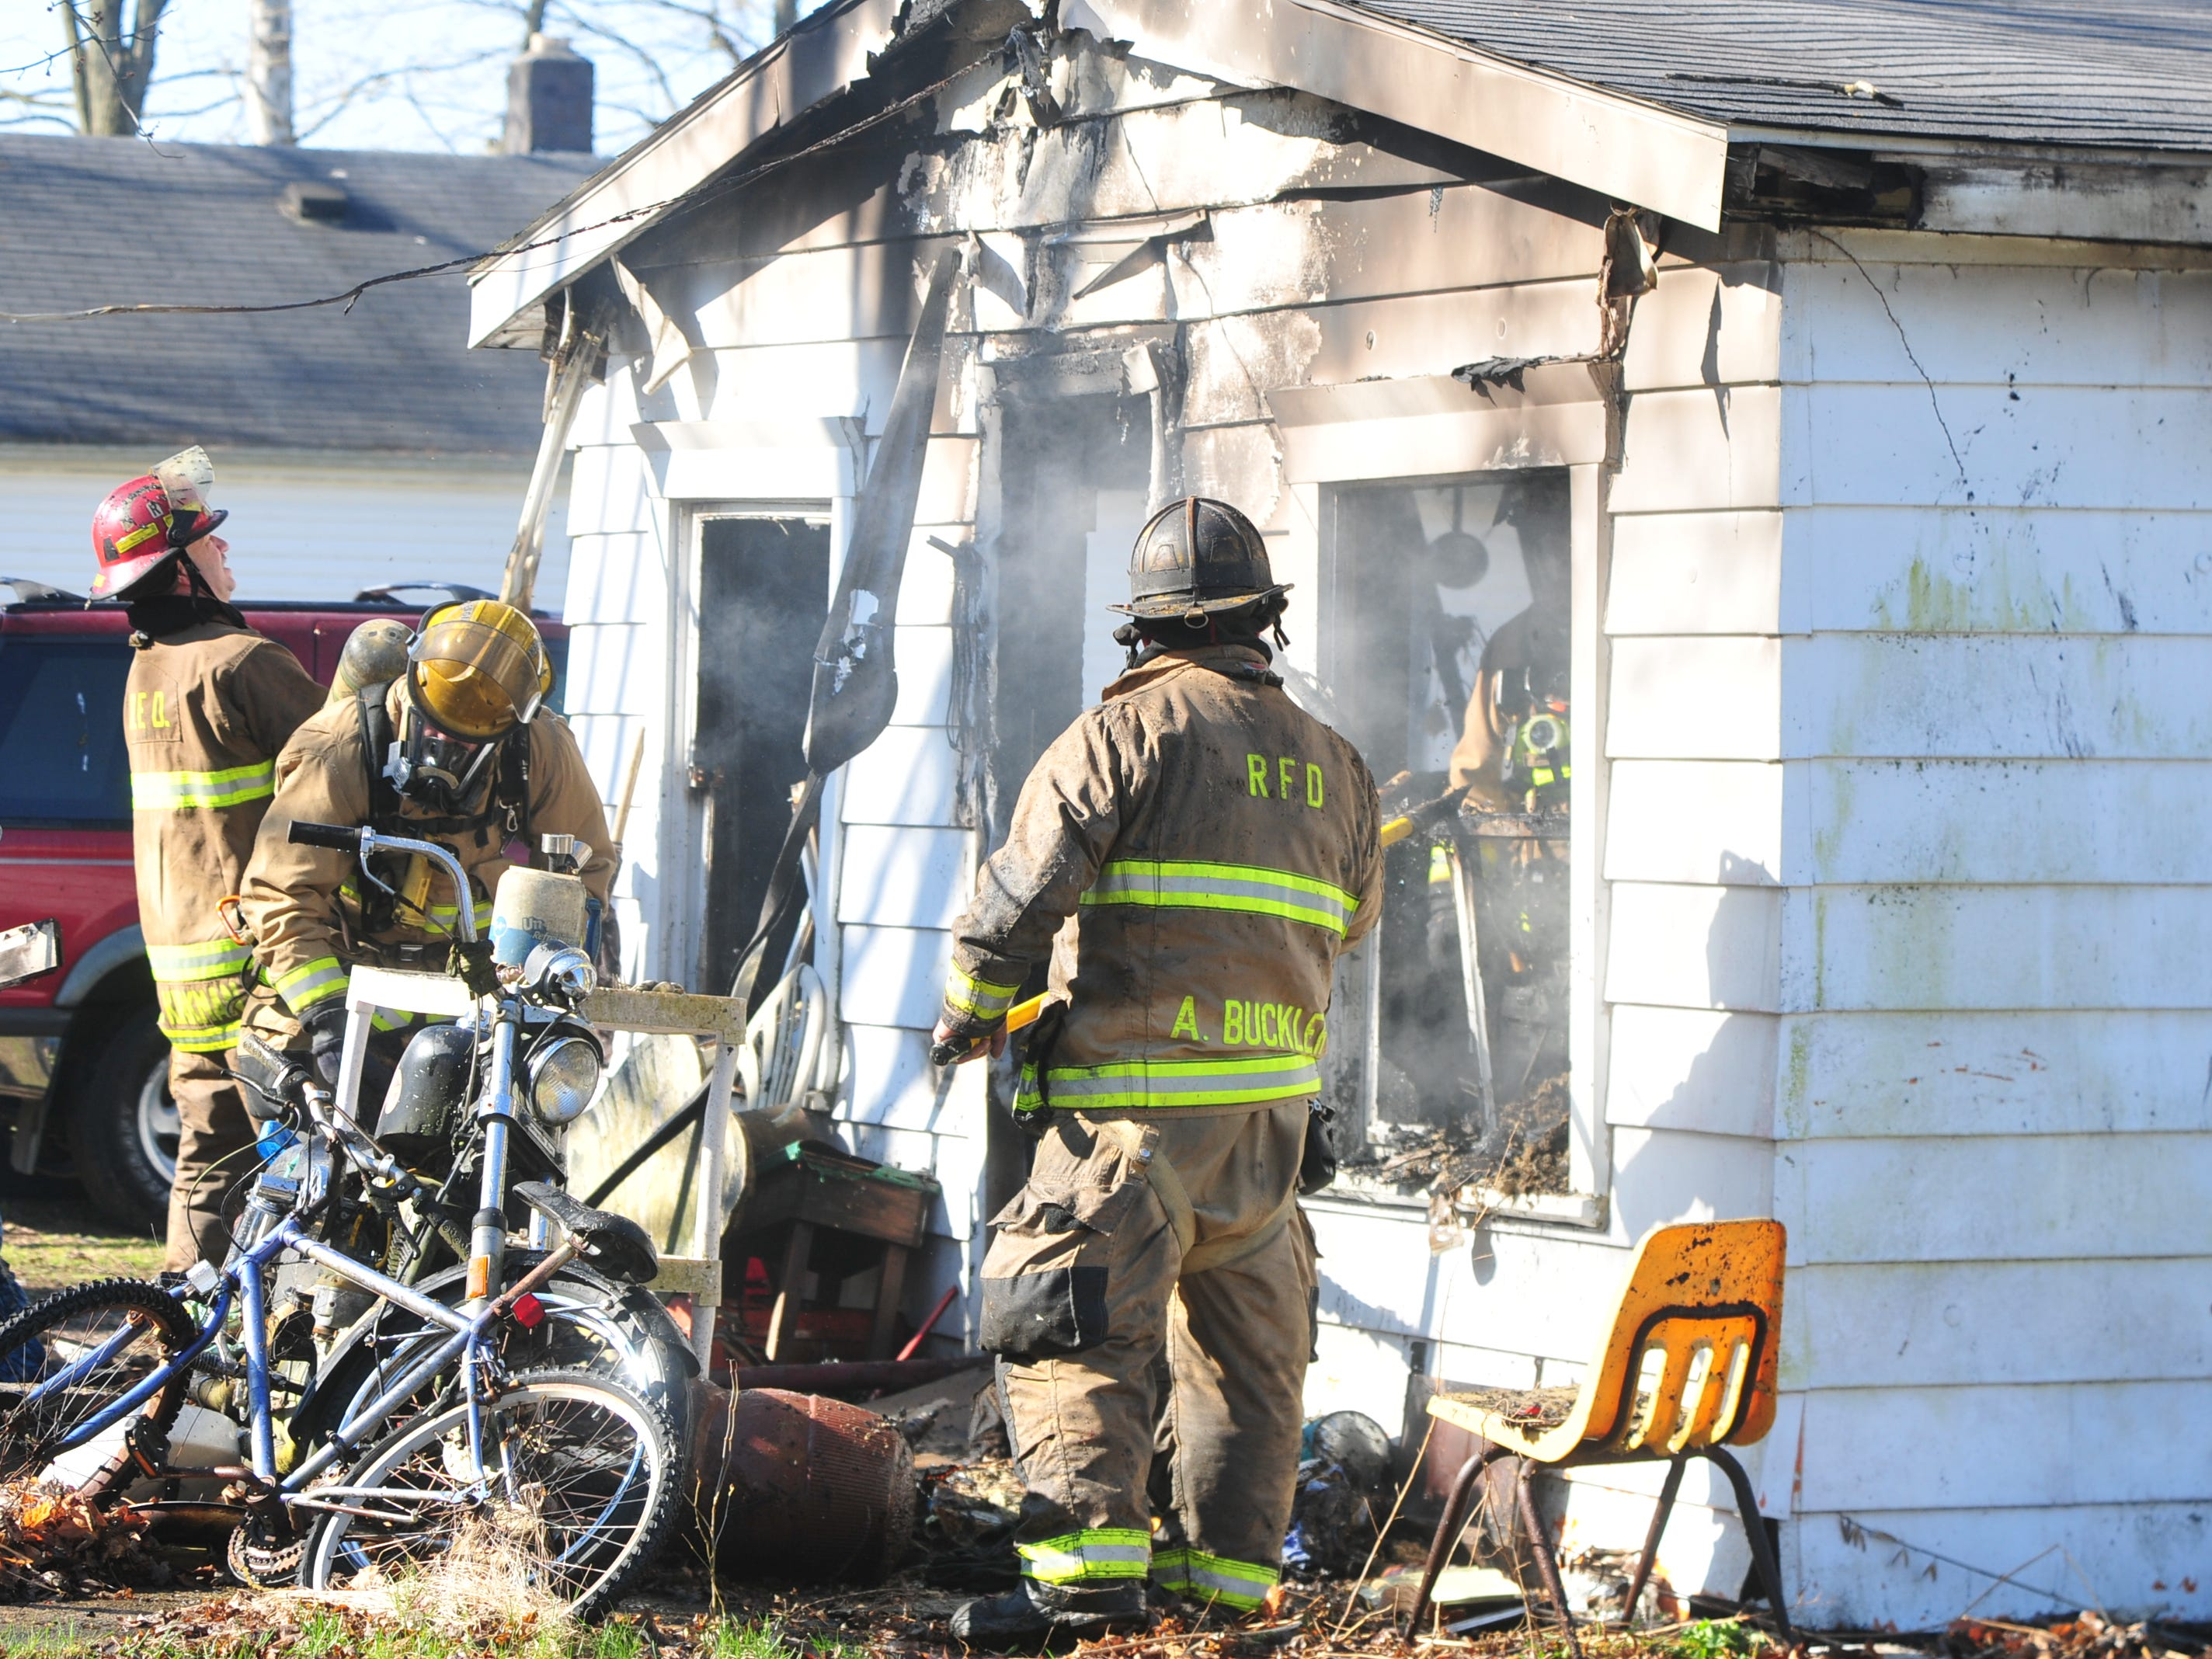 Richmond Fire Department personnel works Wednesday morning at a house fire in the 2100 block of South 11th Street.